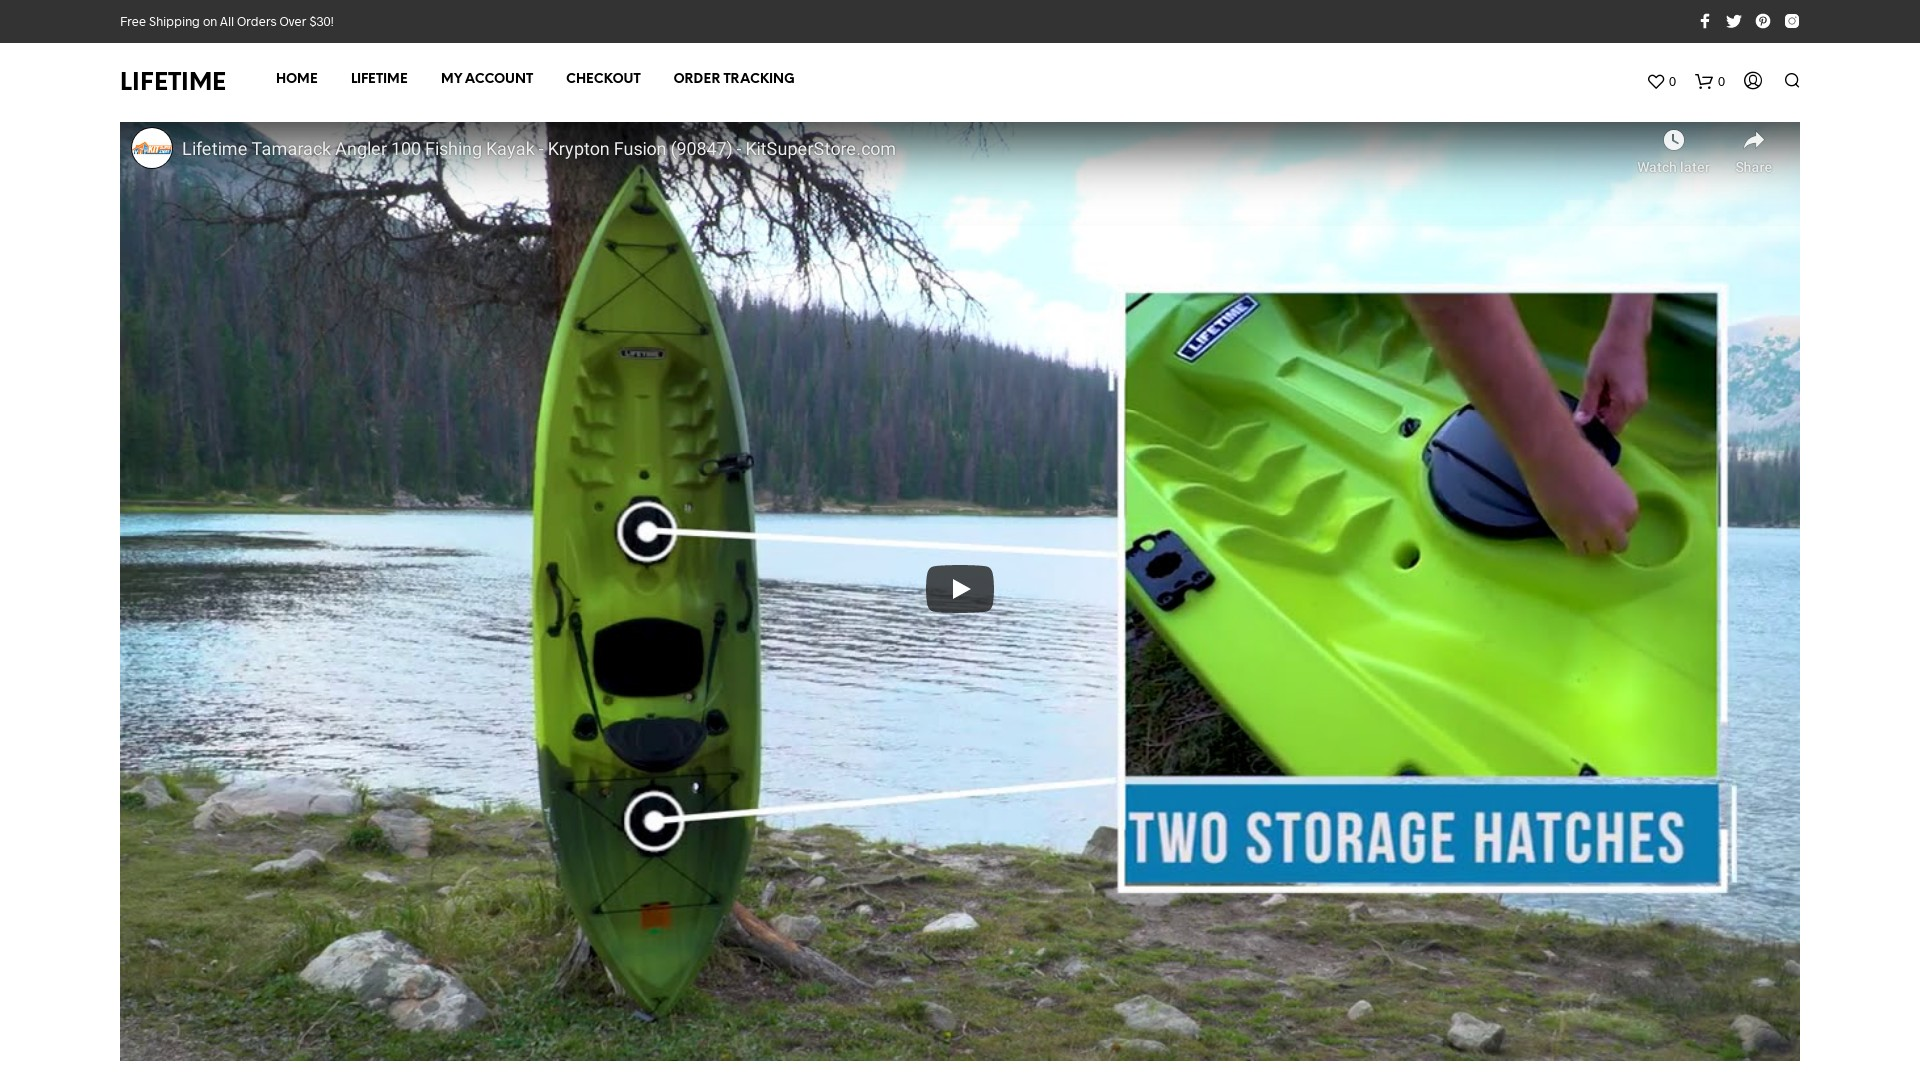 Is SeaShop Space a Scam? Review of the Kayak Store